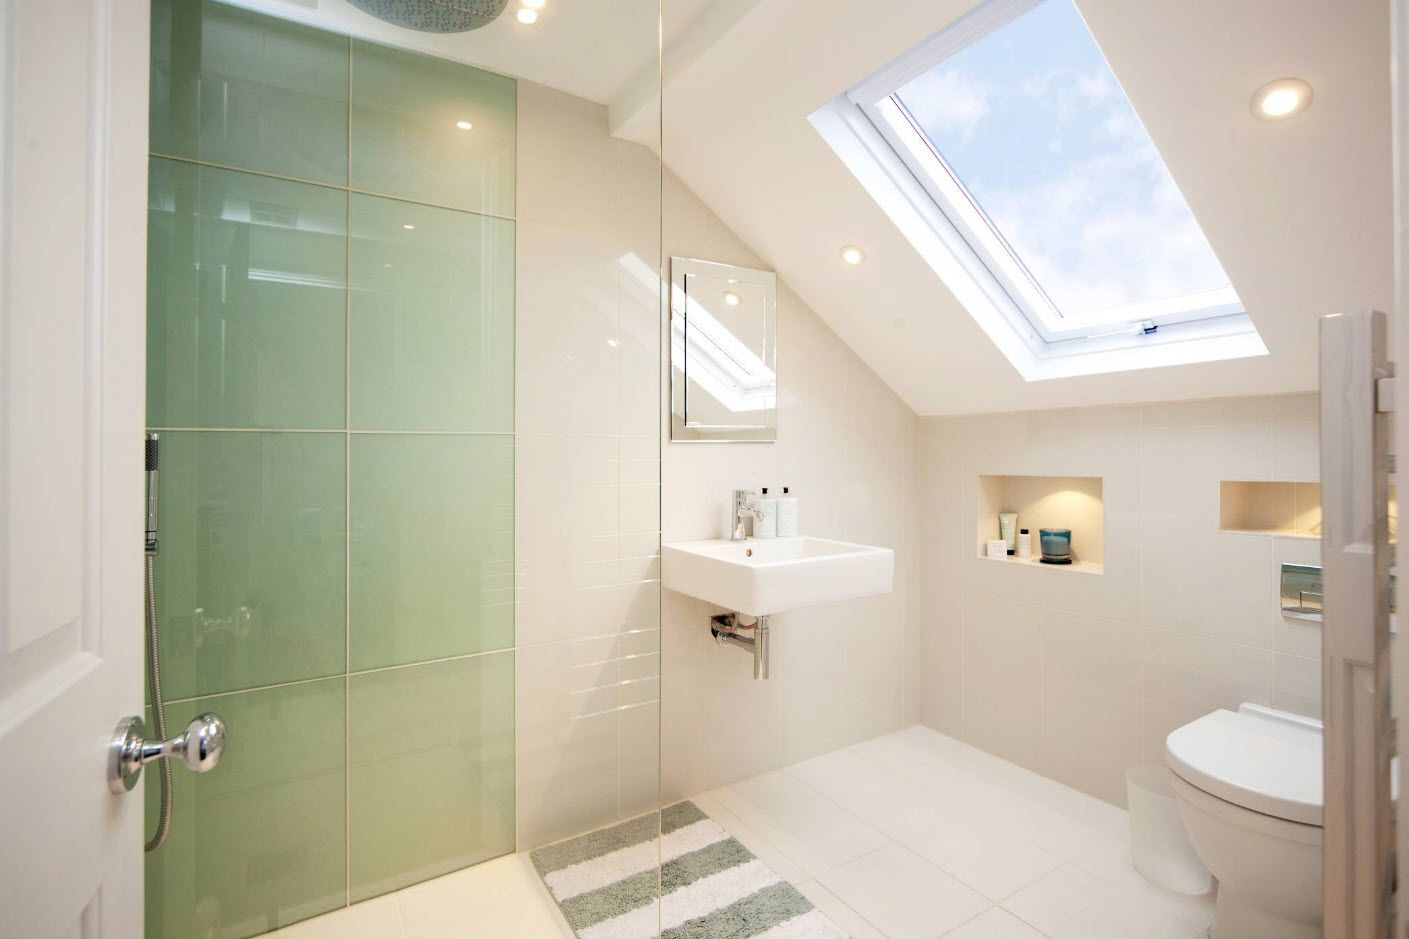 Skylight to the white bathroom interior